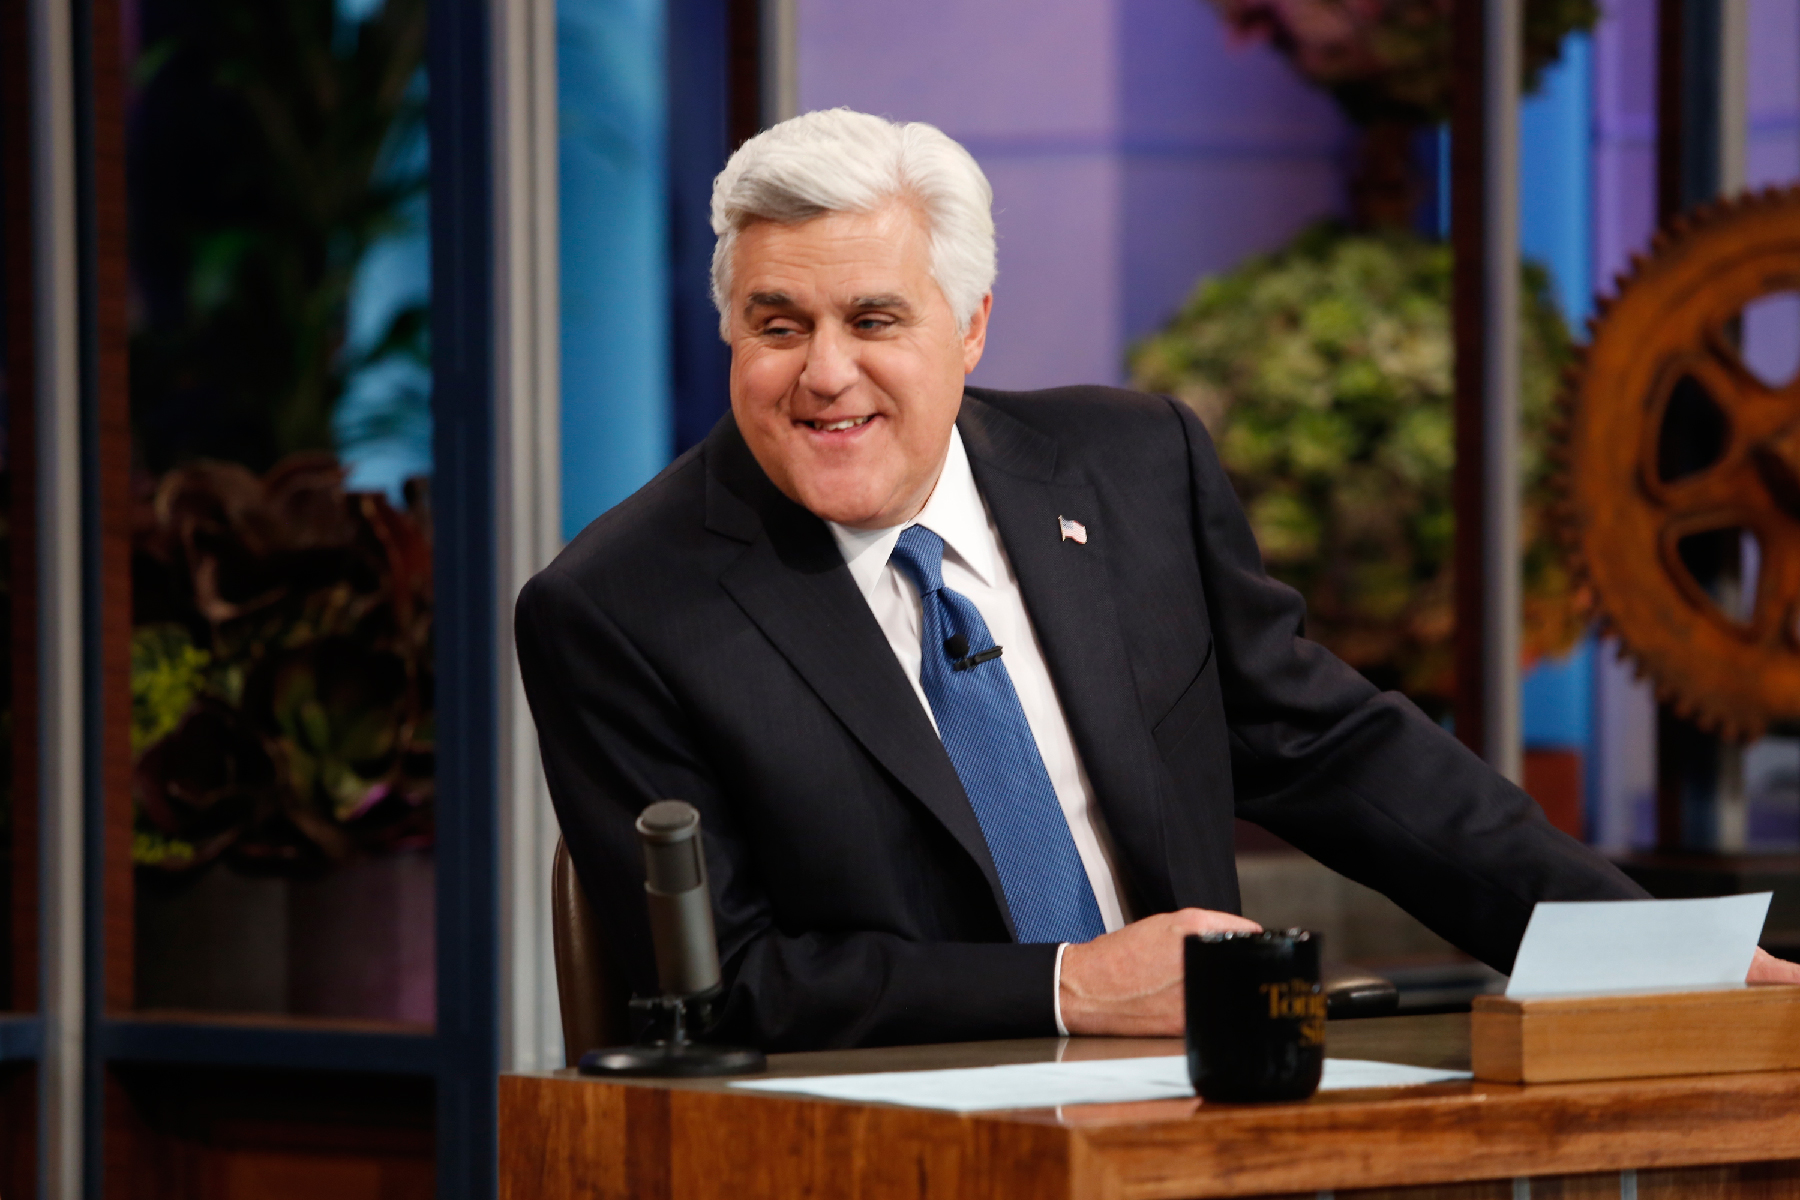 How long has jay leno been hosting the tonight show